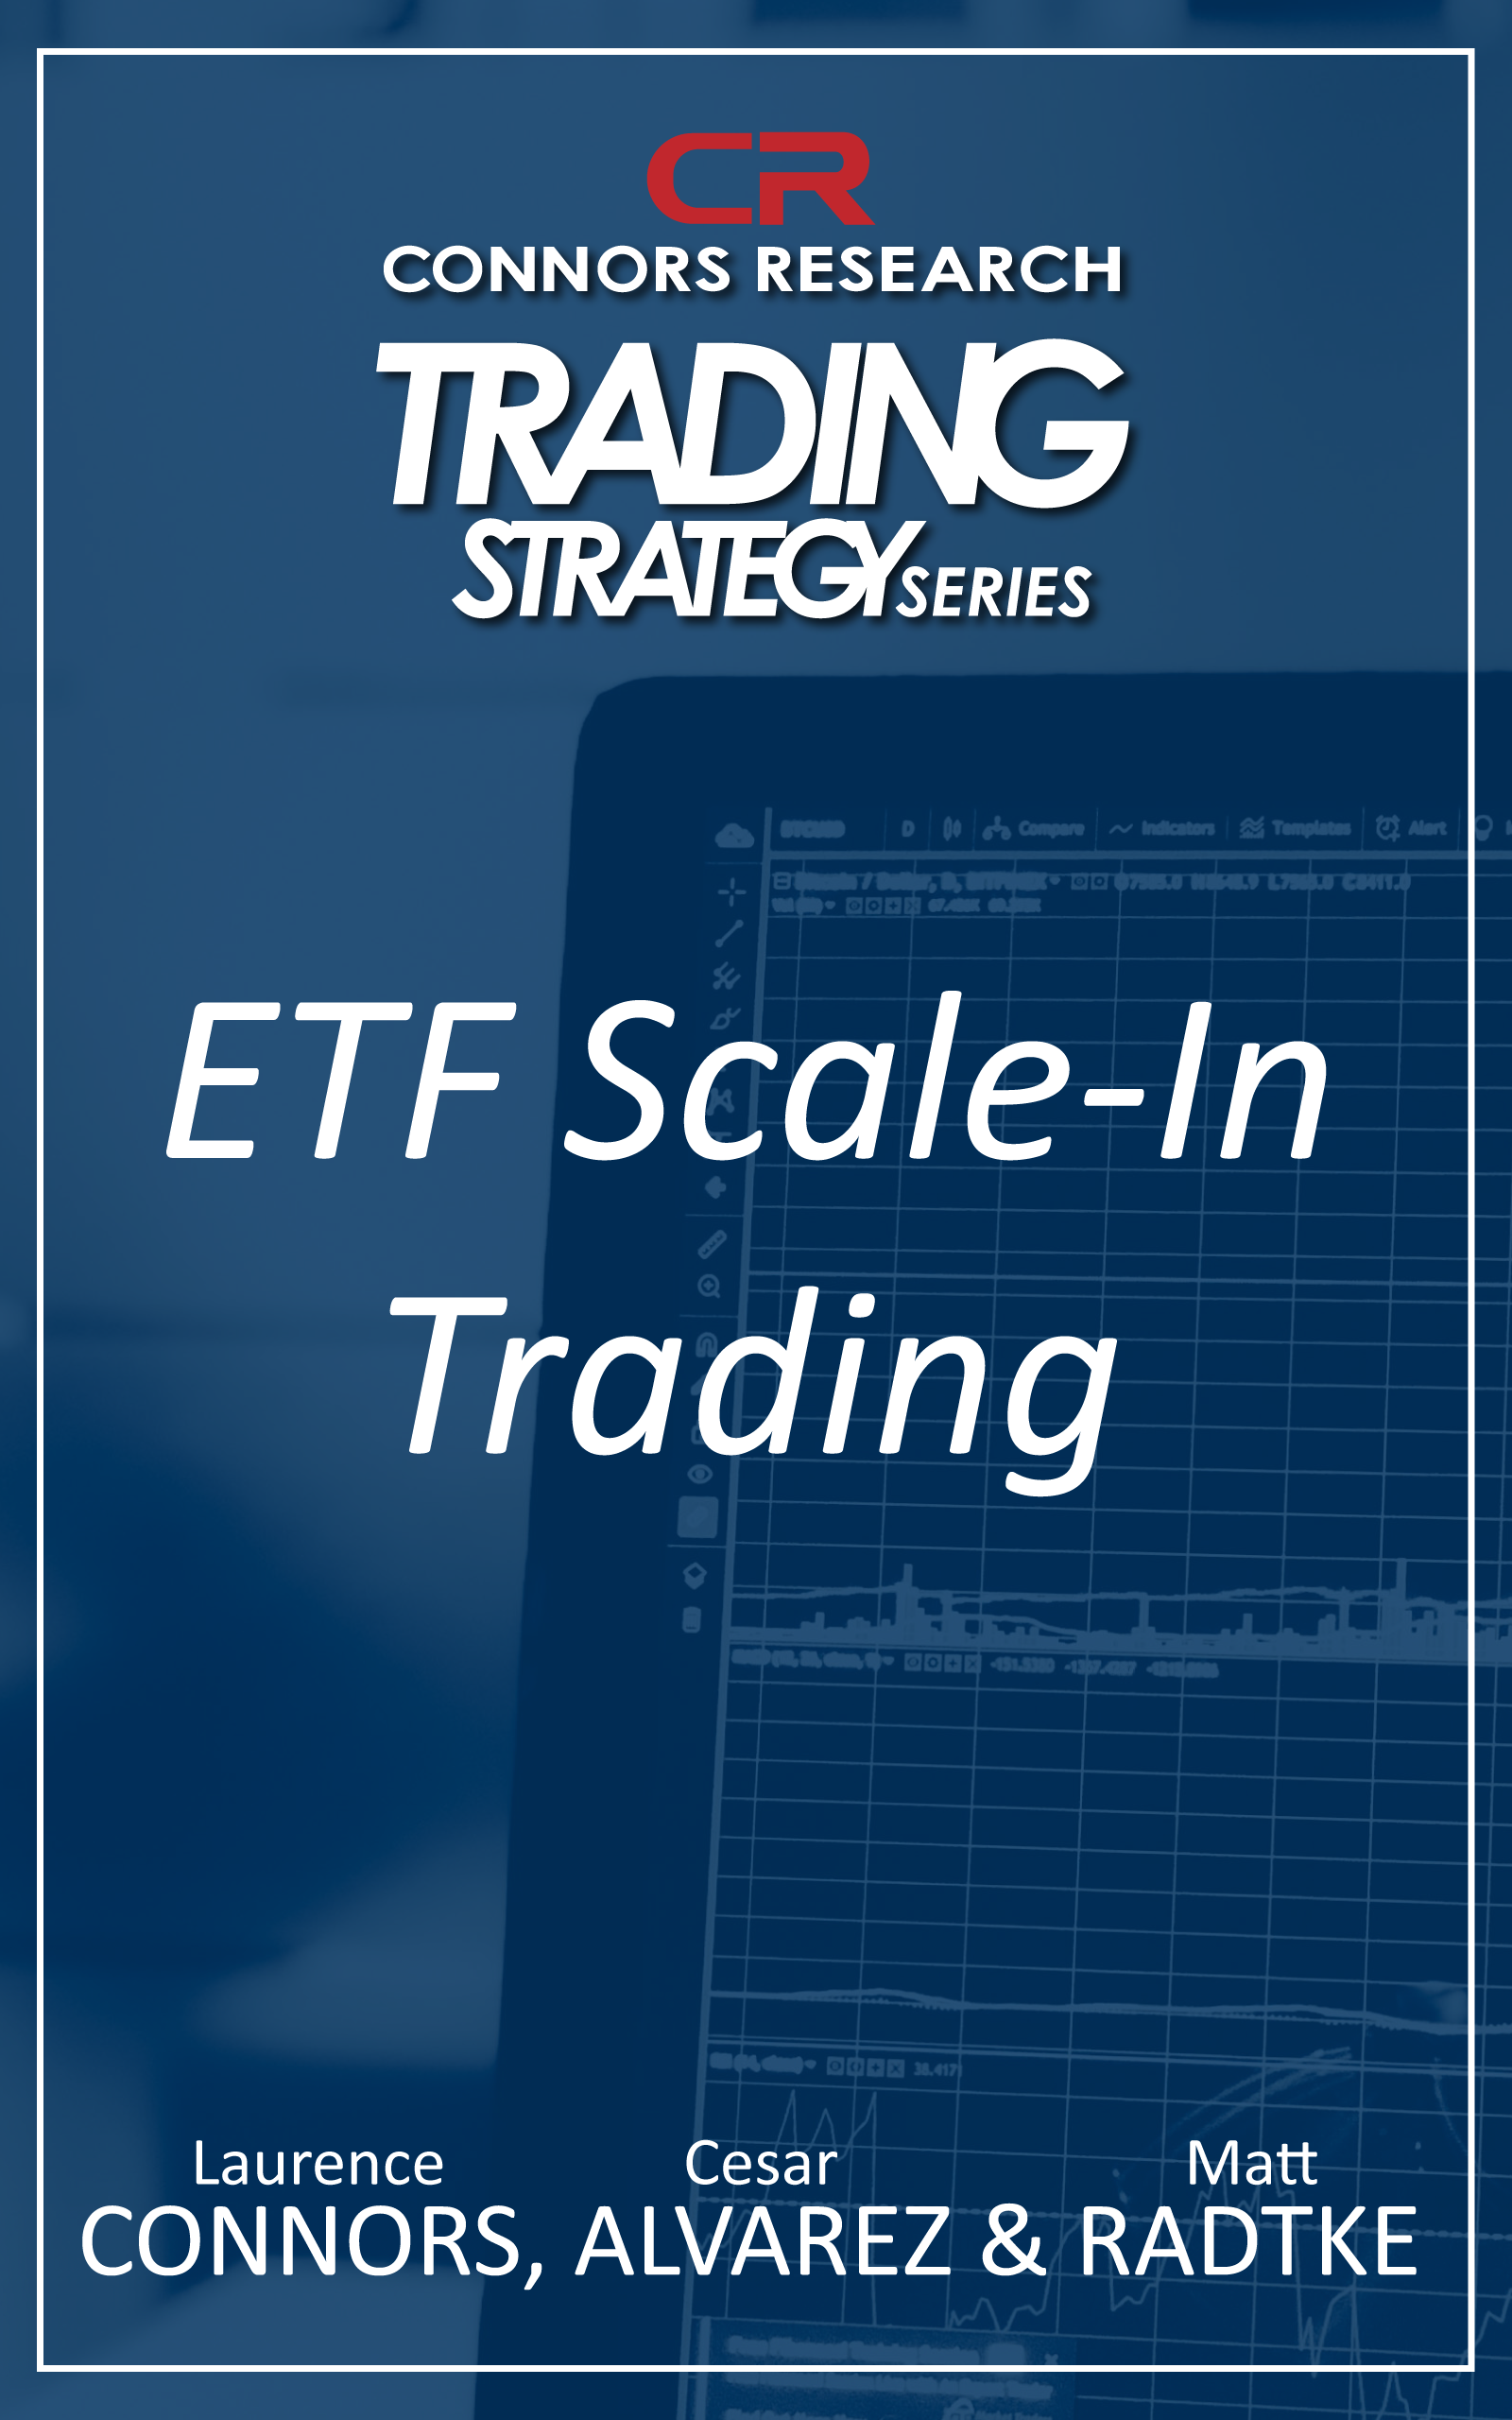 Connors Research Trading Strategy Series: ETF Scale-In Trading BOO-CRSI-D